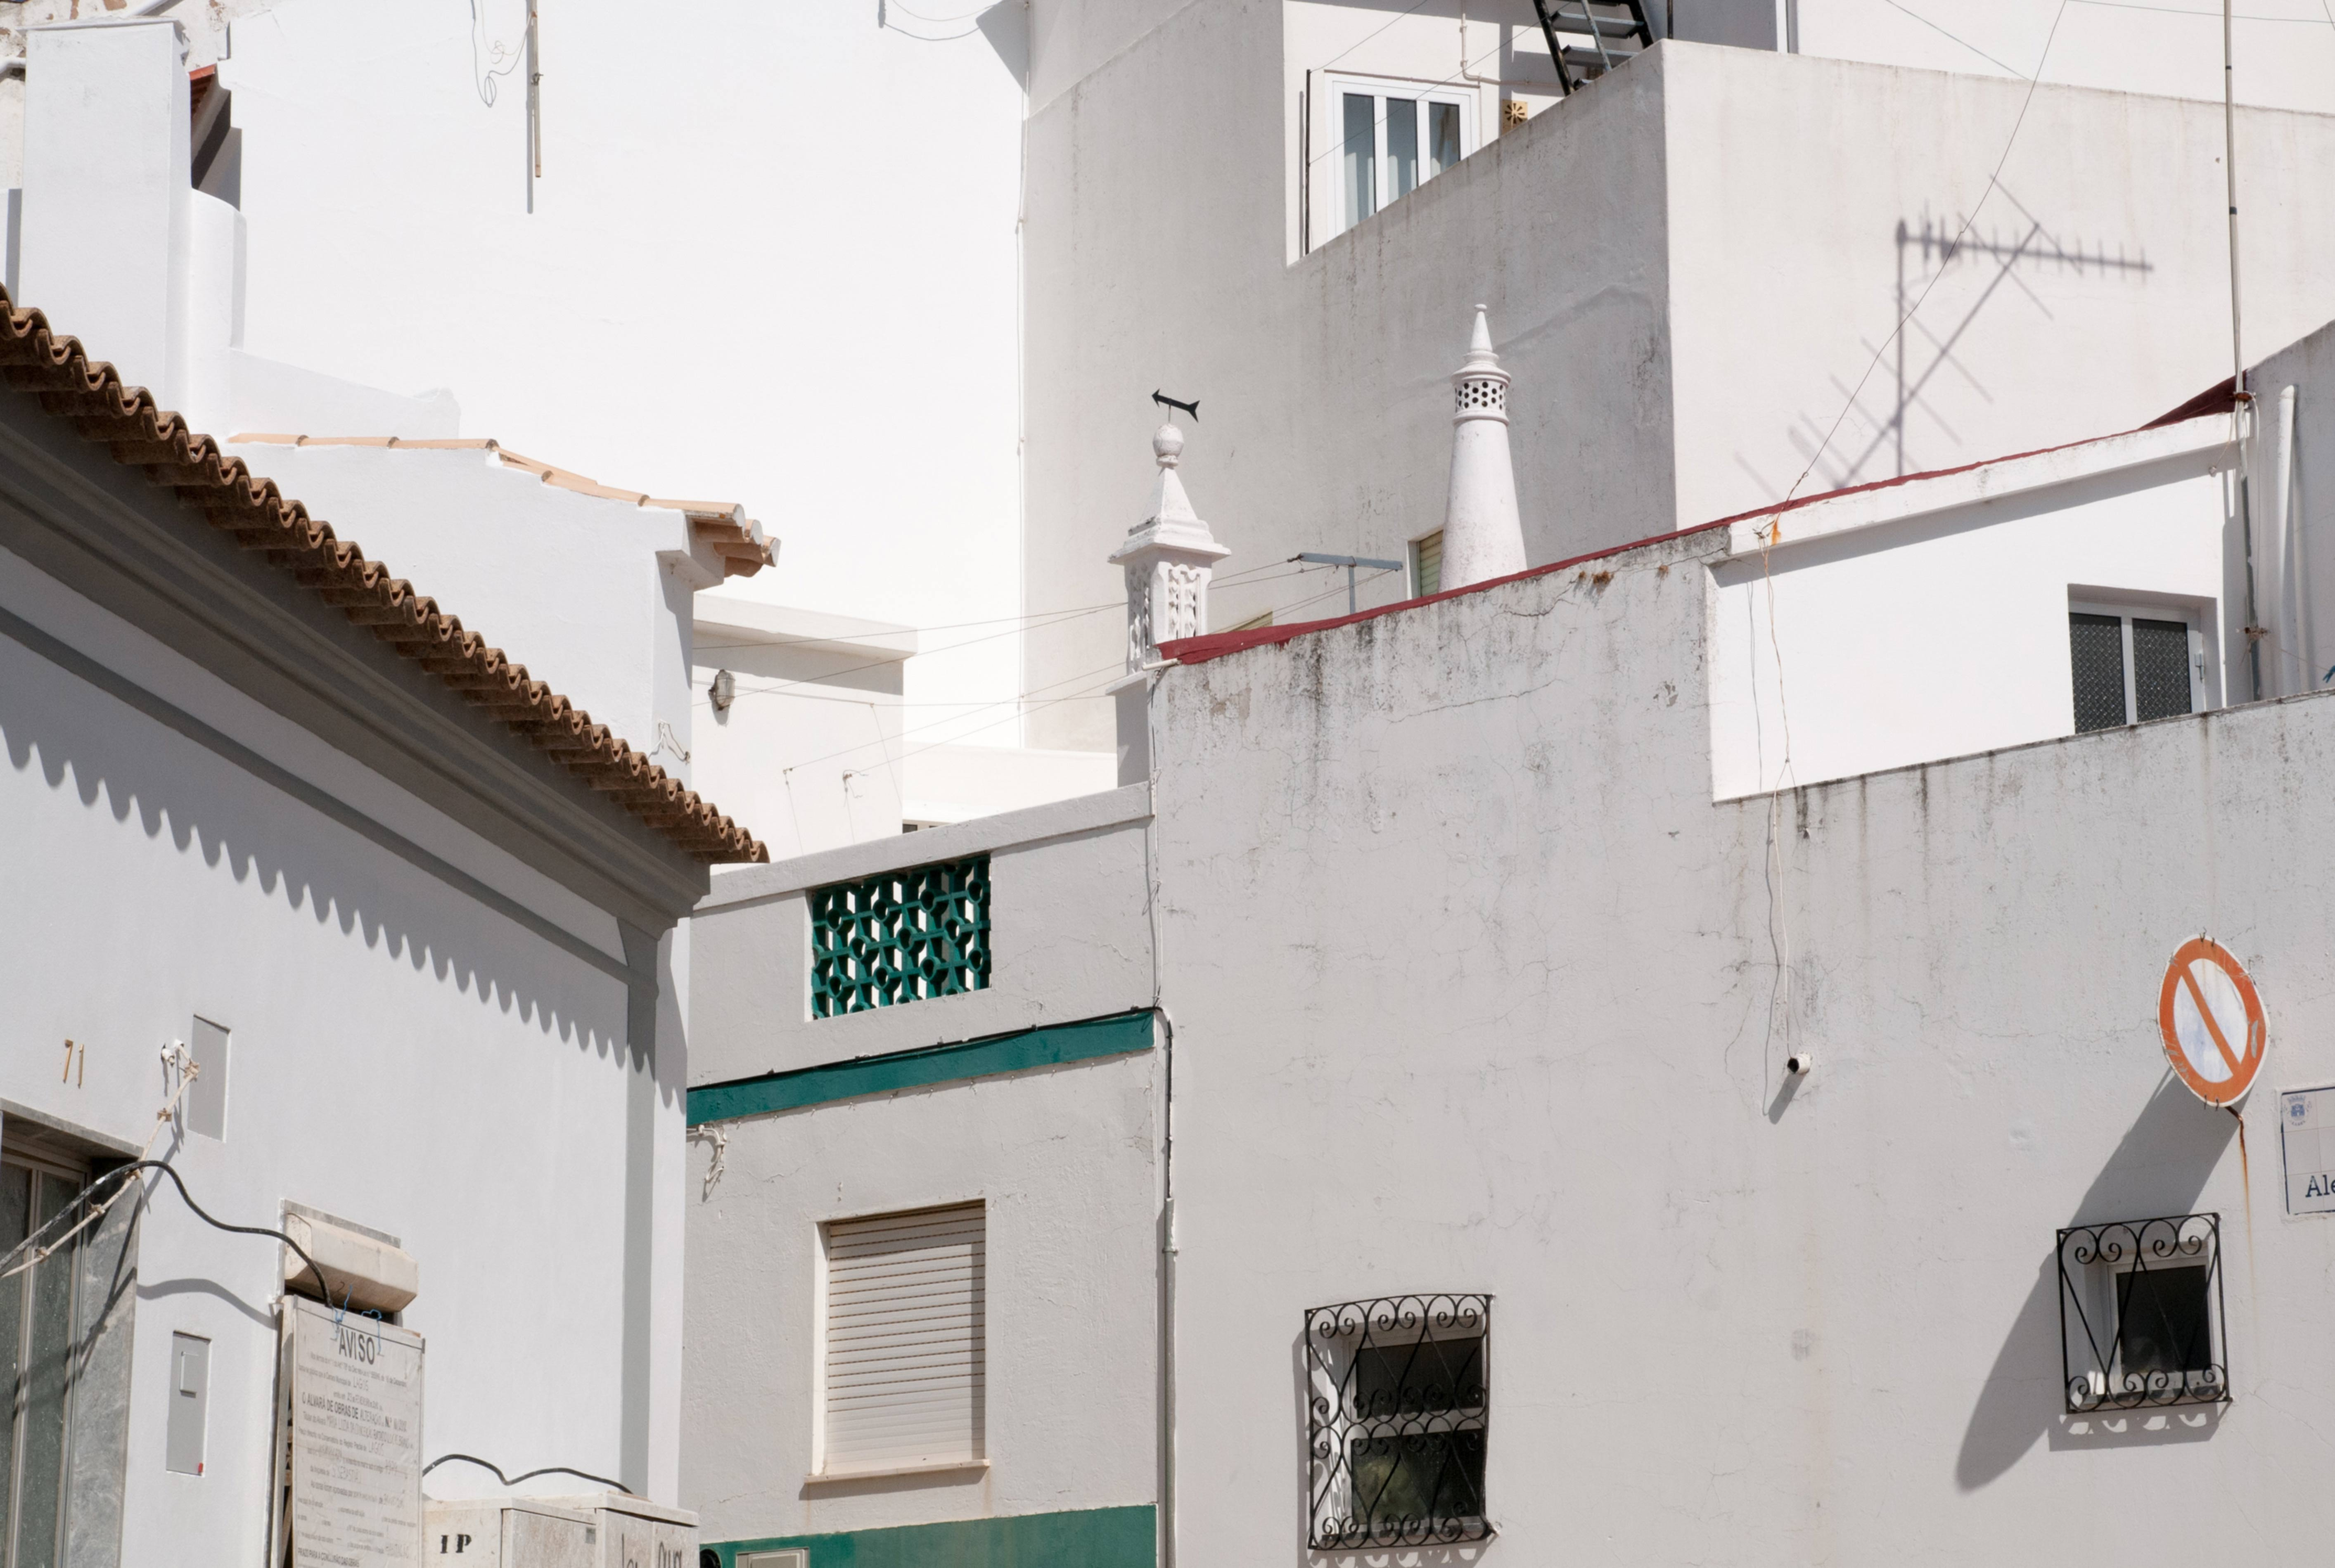 Corner of Houses with Only White Walls